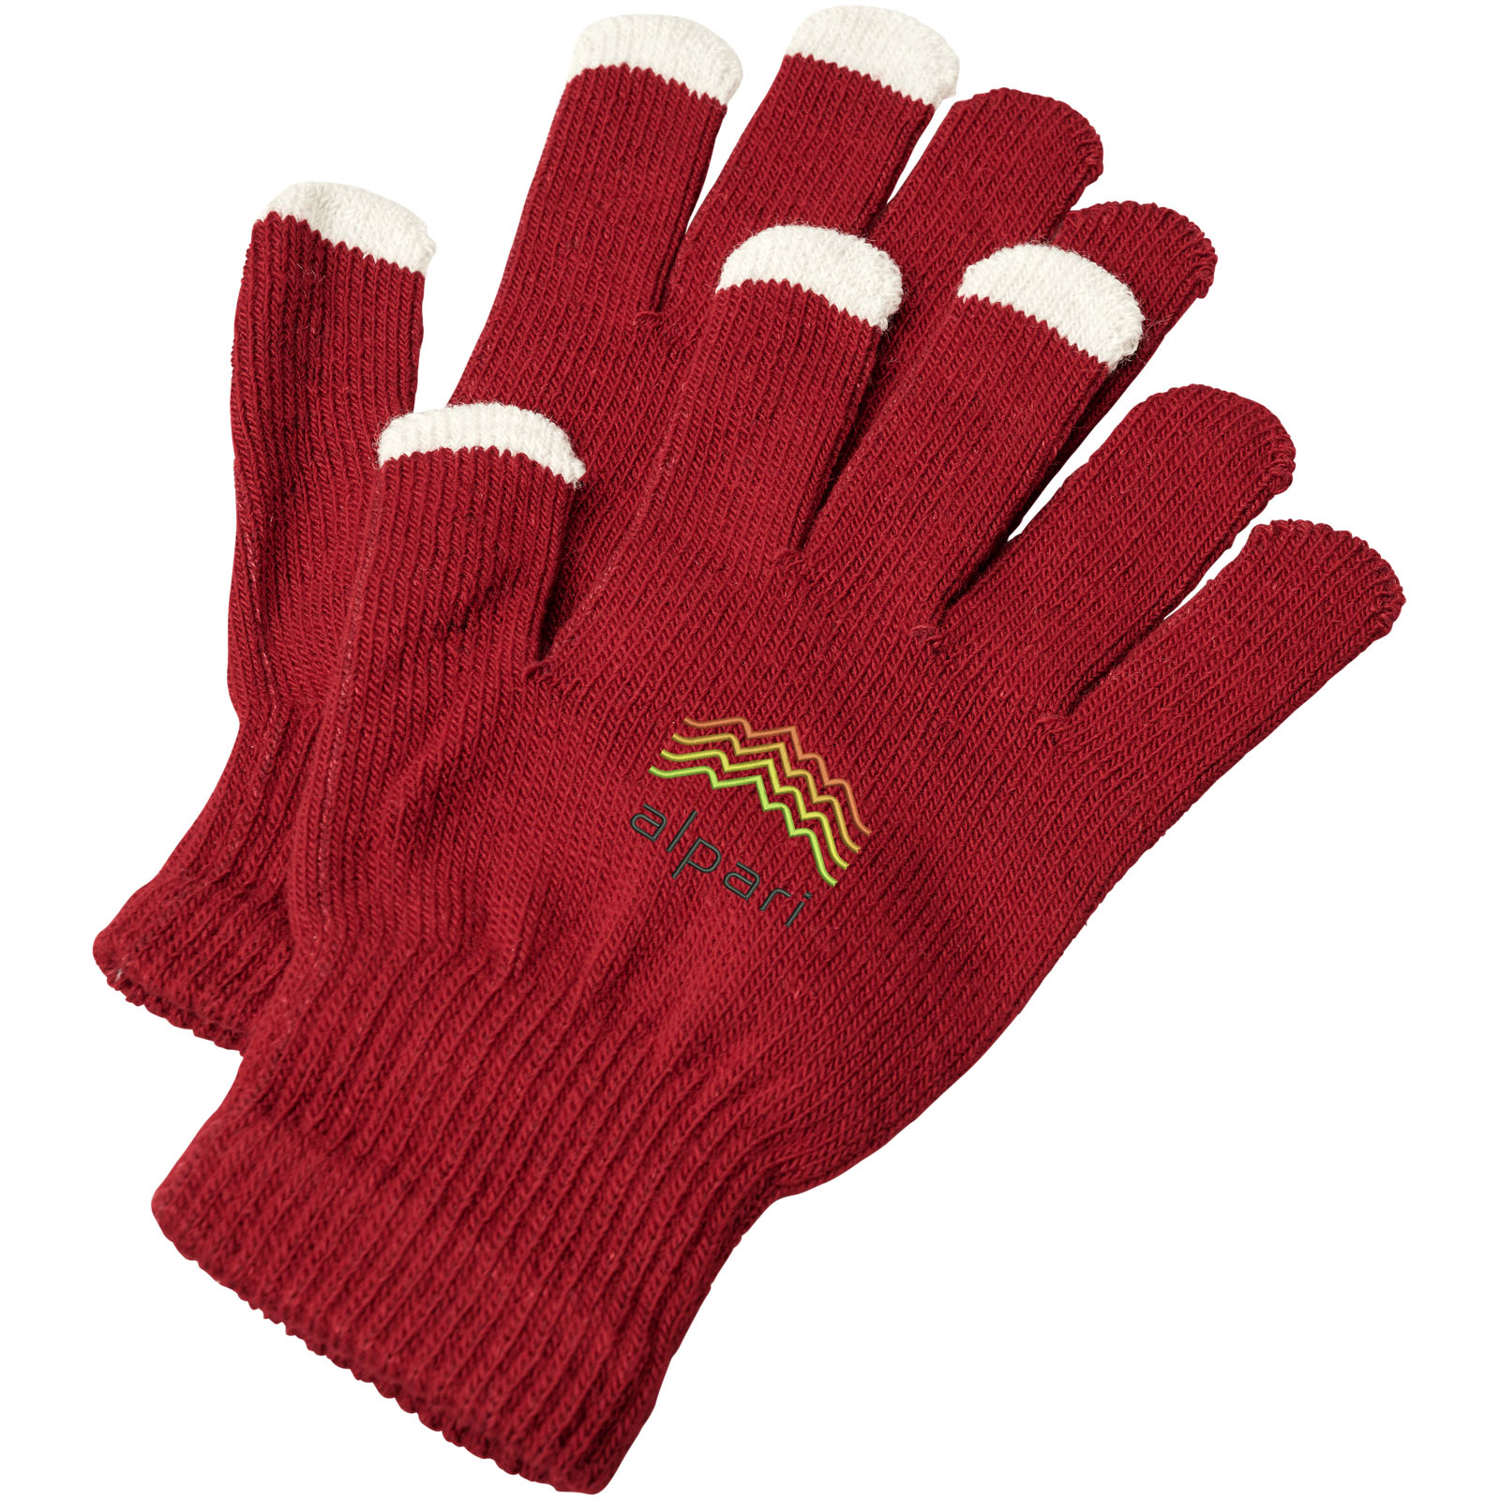 Billy Tactile Gloves